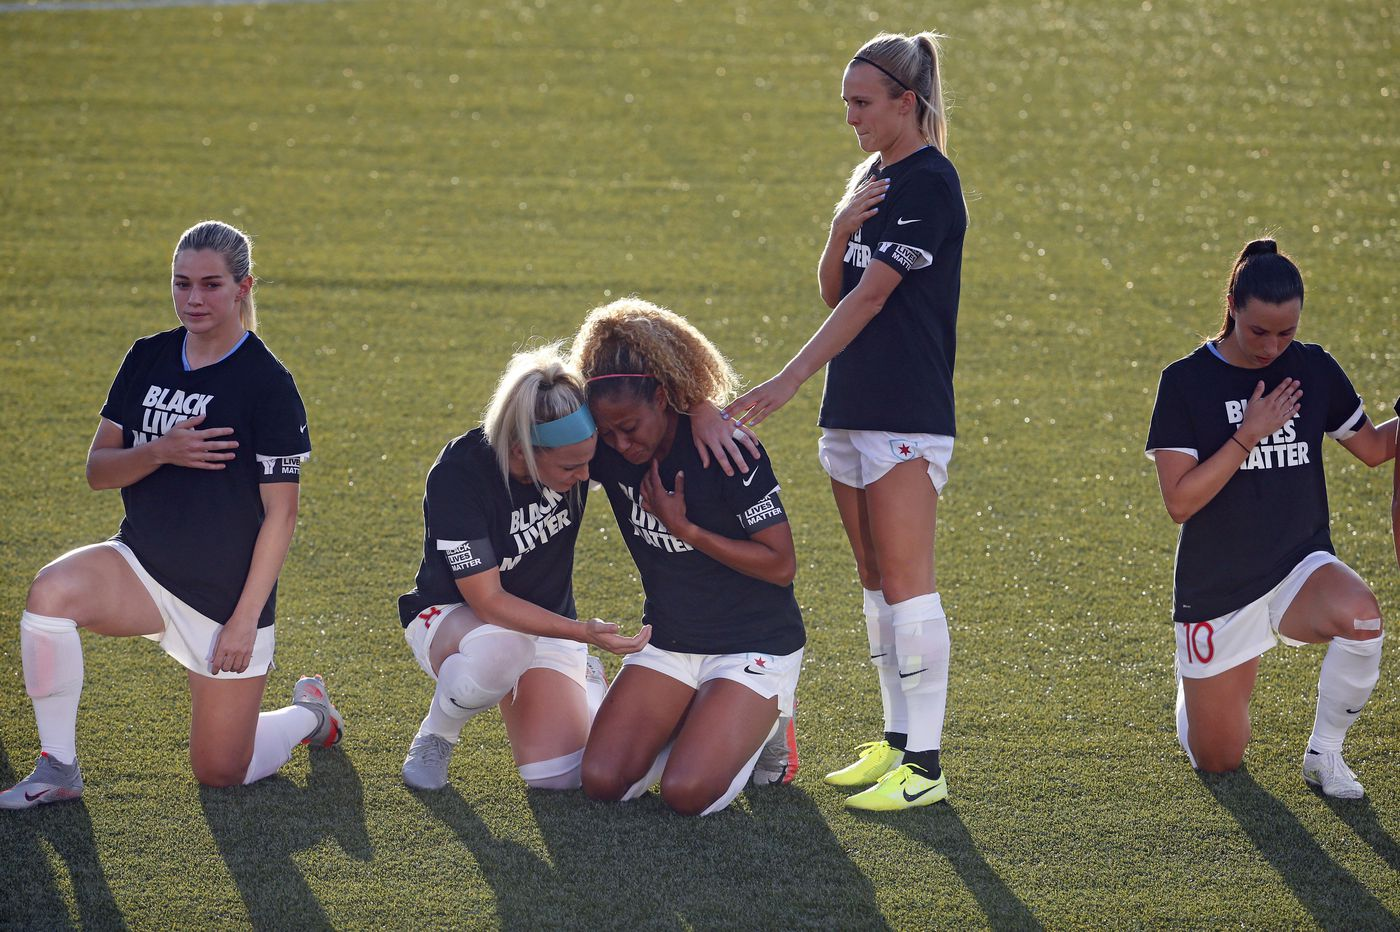 NWSL players kneel during national anthem on Challenge Cup's opening day